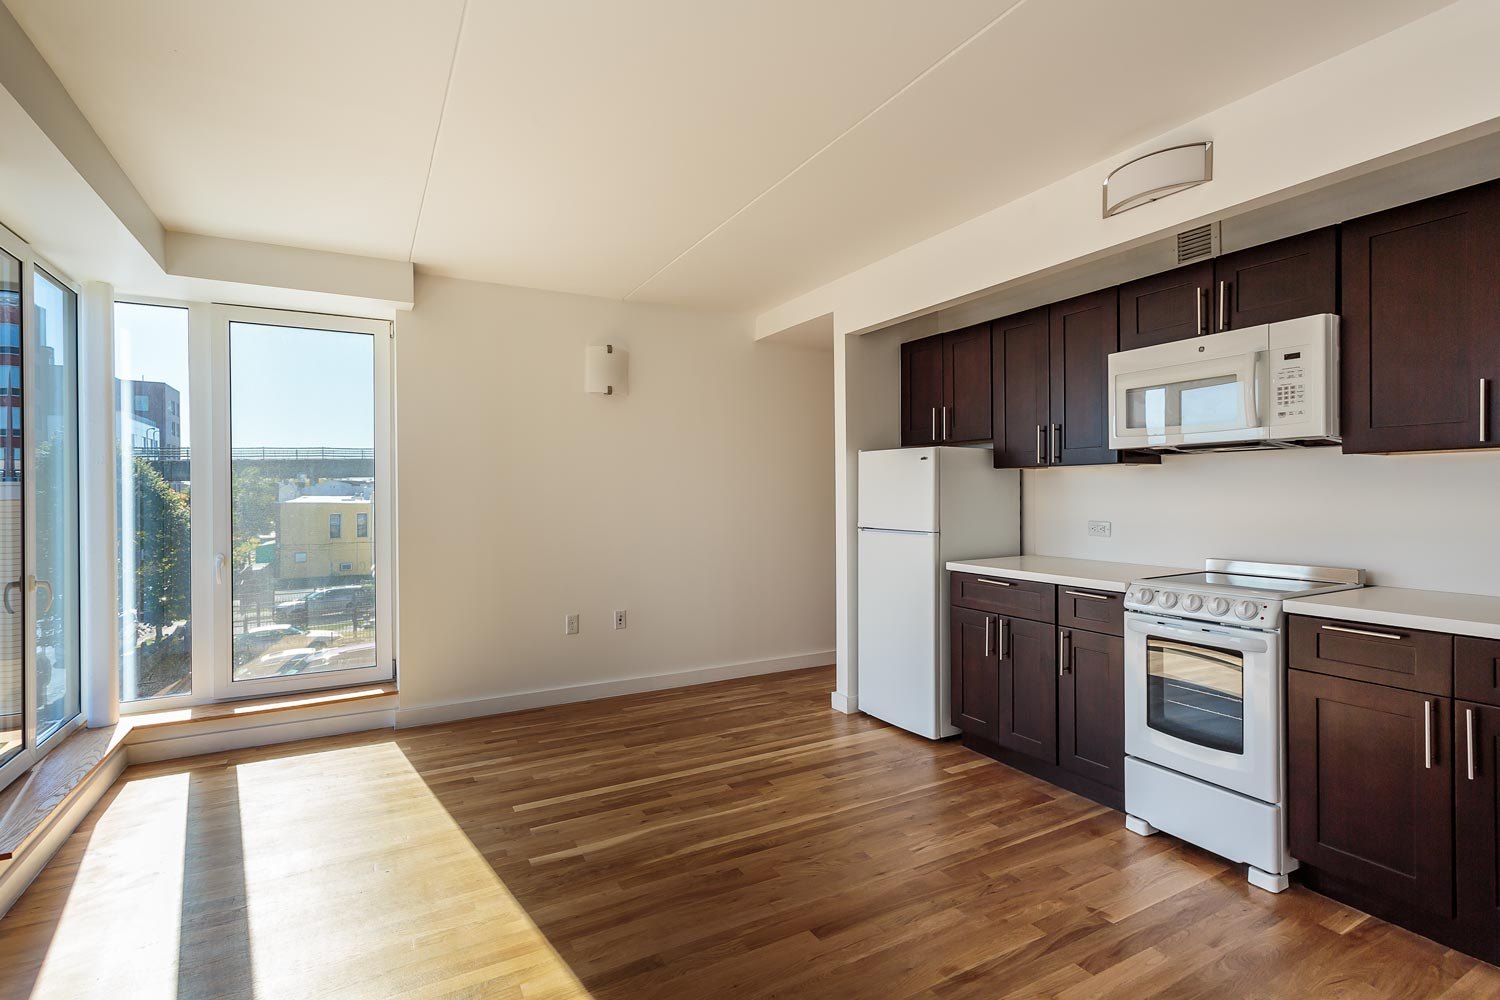 All units at Beverly's Place are designed with floor to ceiling fenestration and full kitchens